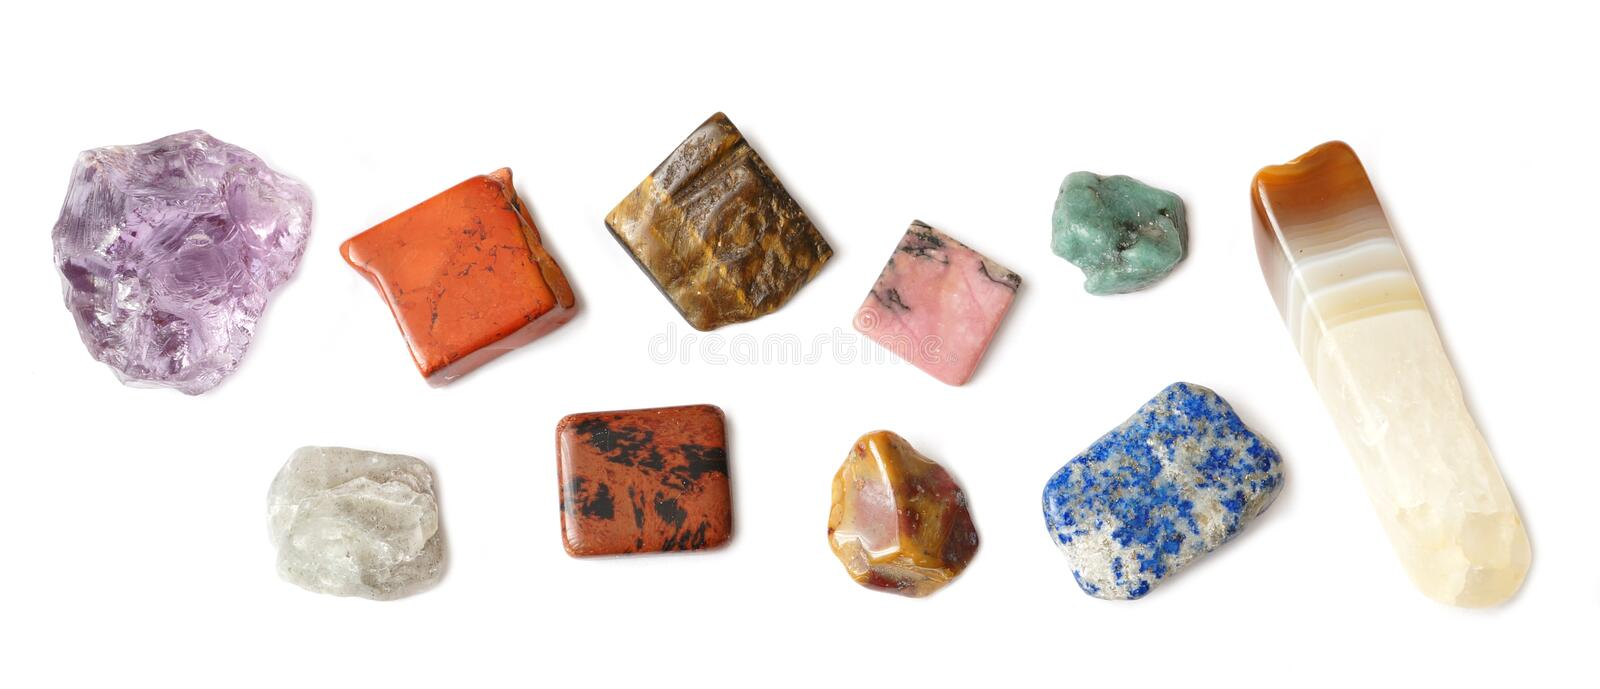 Rock and mineral collection royalty free stock images